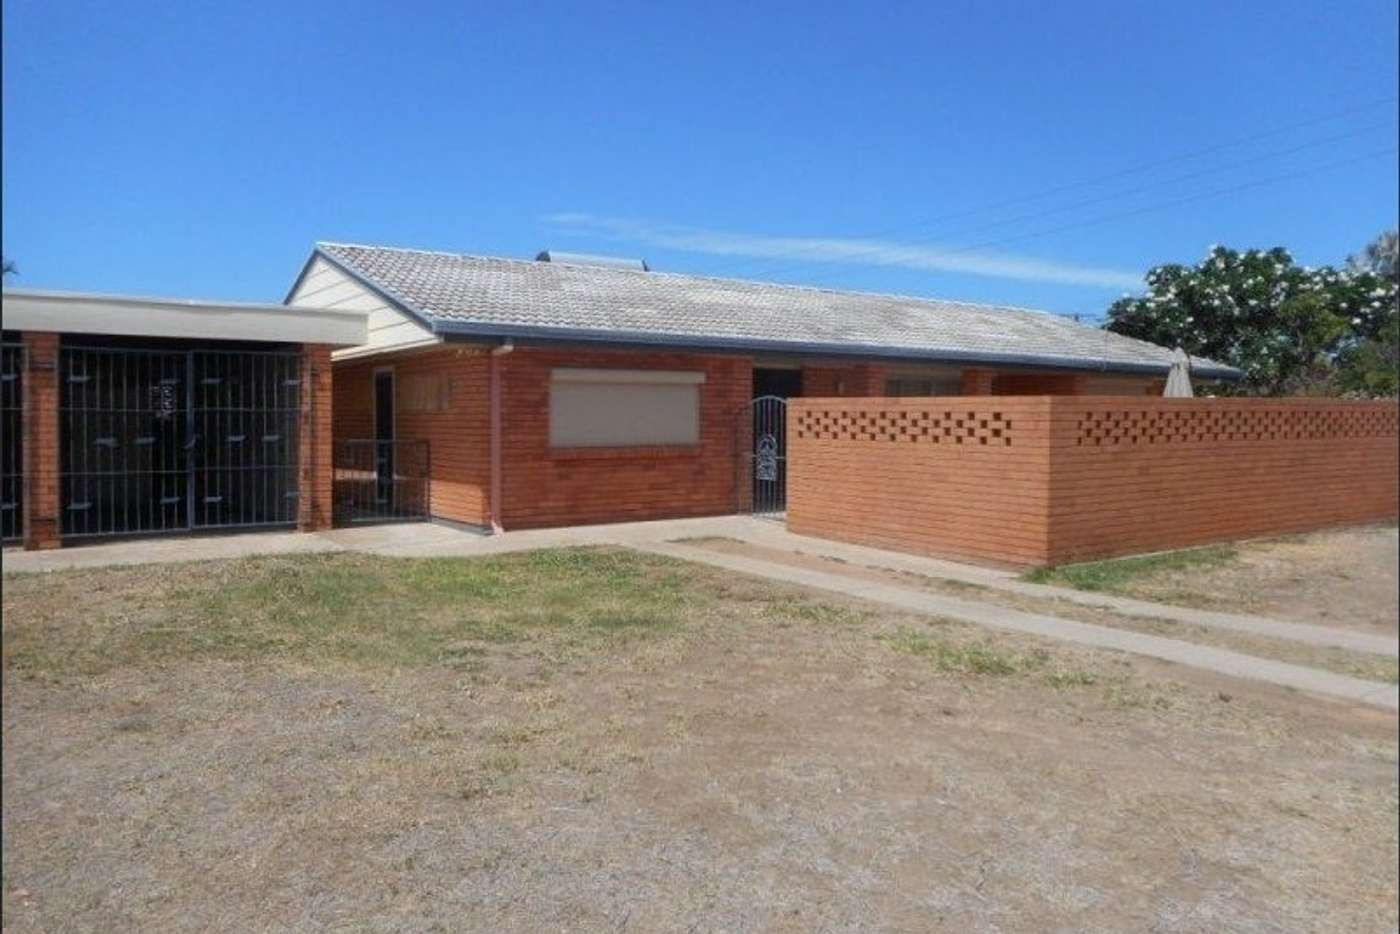 Main view of Homely house listing, 1 Cahill St, Aitkenvale QLD 4814